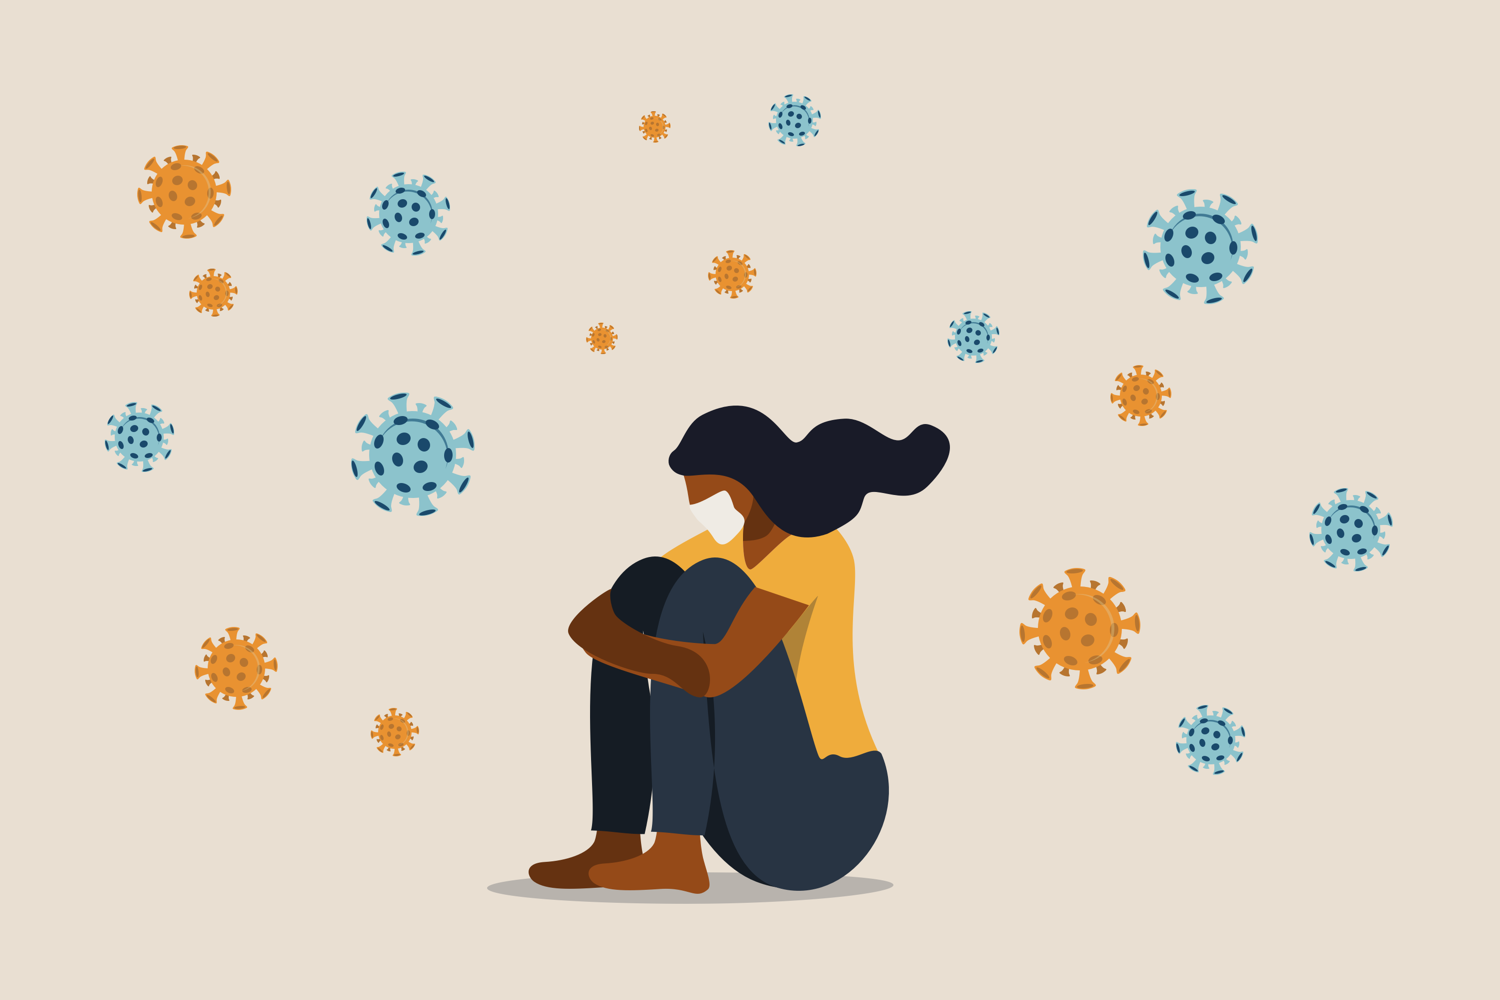 illustration of Black woman sitting with knees pulled to her chest surrounded by exaggerated large virus particles